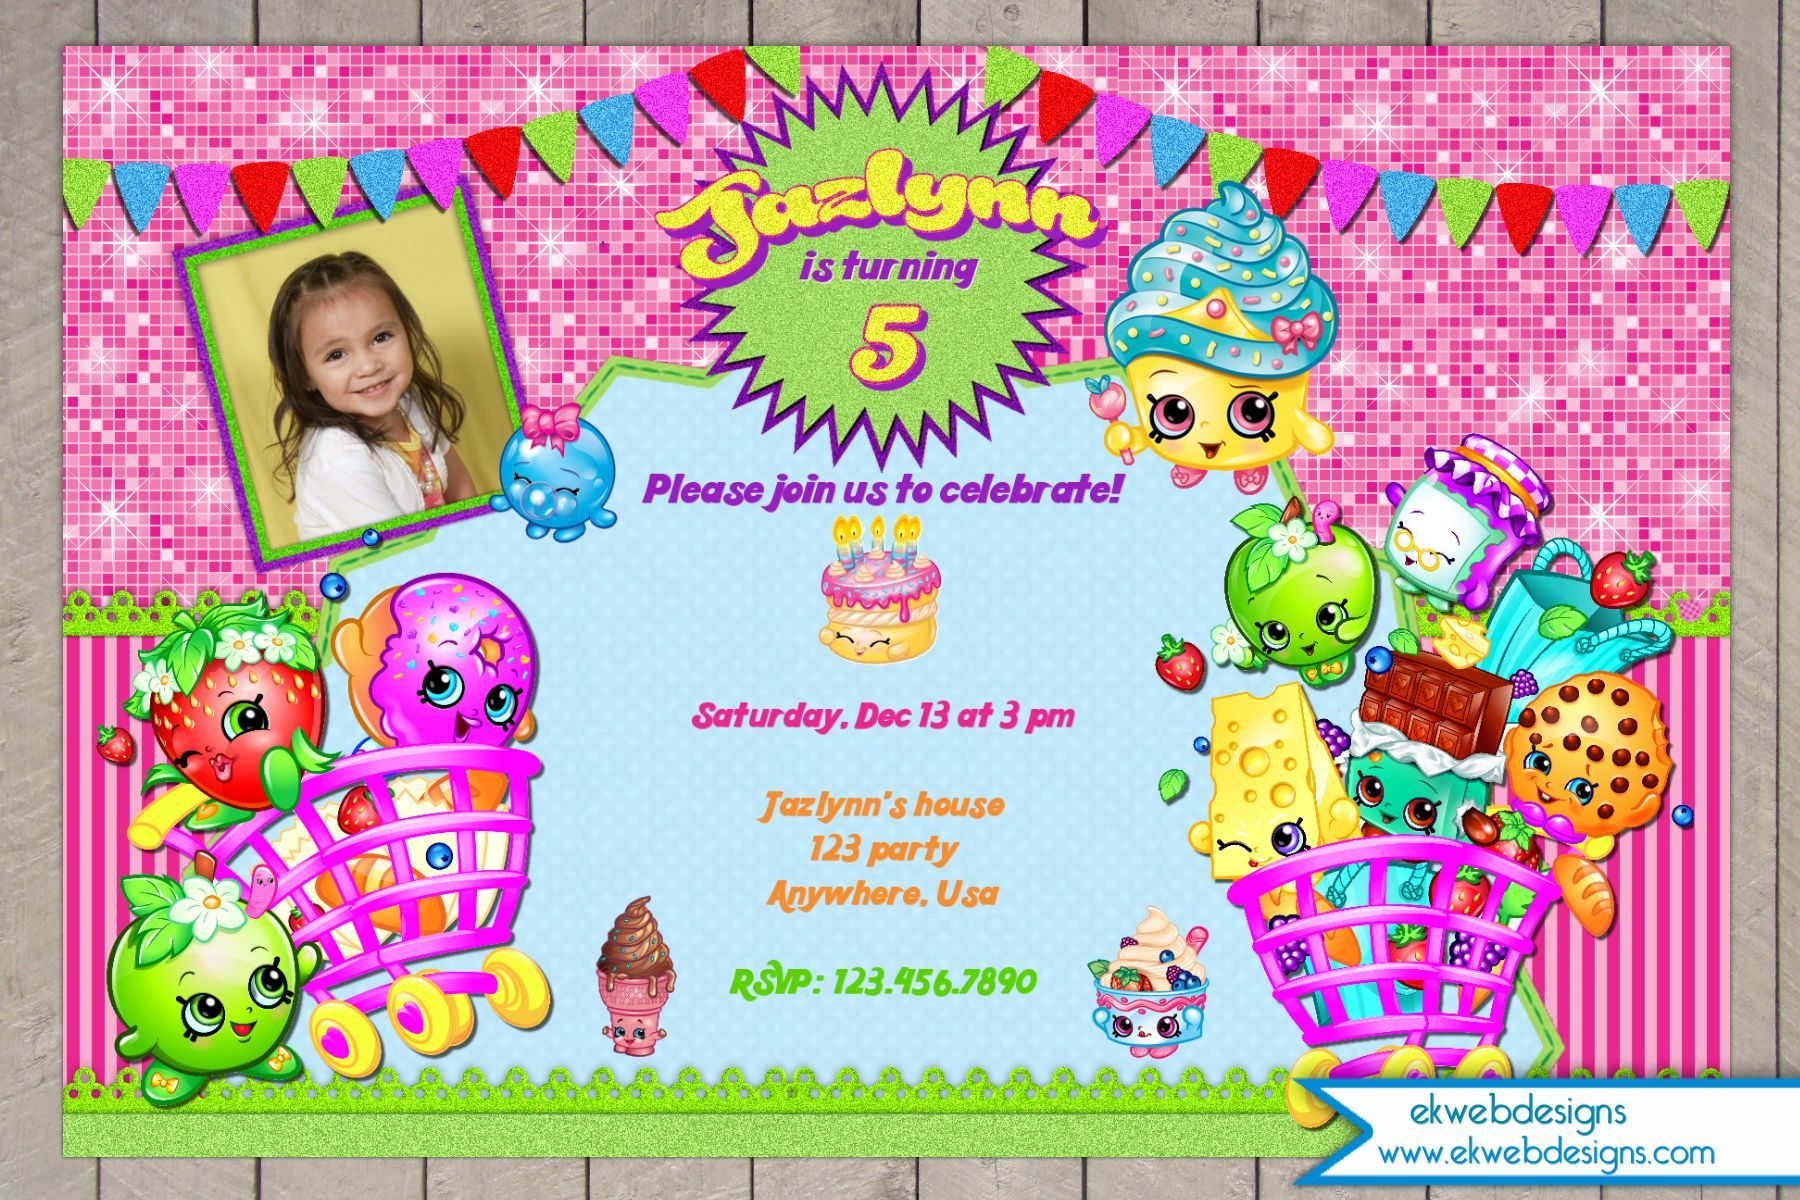 78+ images about Shopkins on Pinterest | Birthdays, Birthday ...